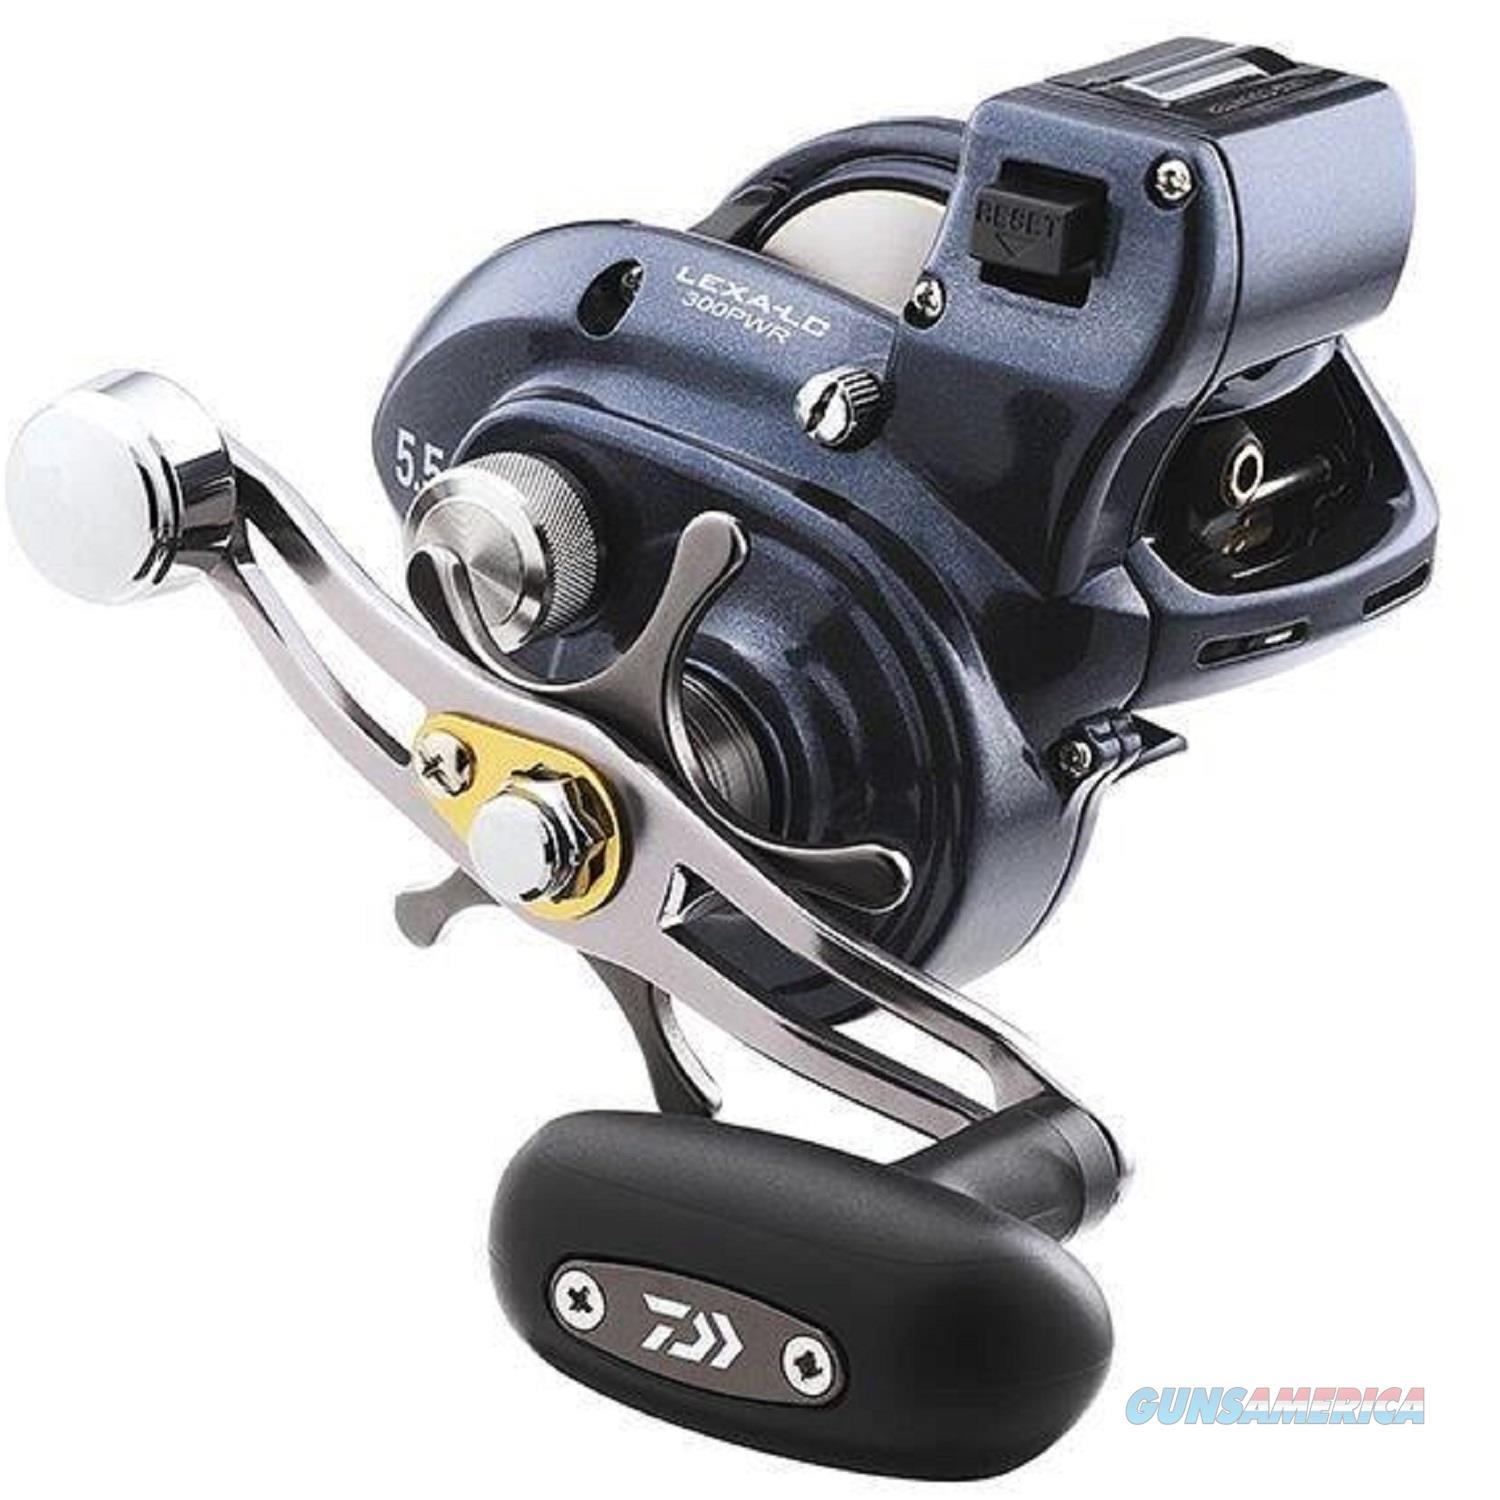 Daiwa Lexa 300 Line Counter Baitcasting Reel LEXA-LC300H  Non-Guns > Fishing/Spearfishing